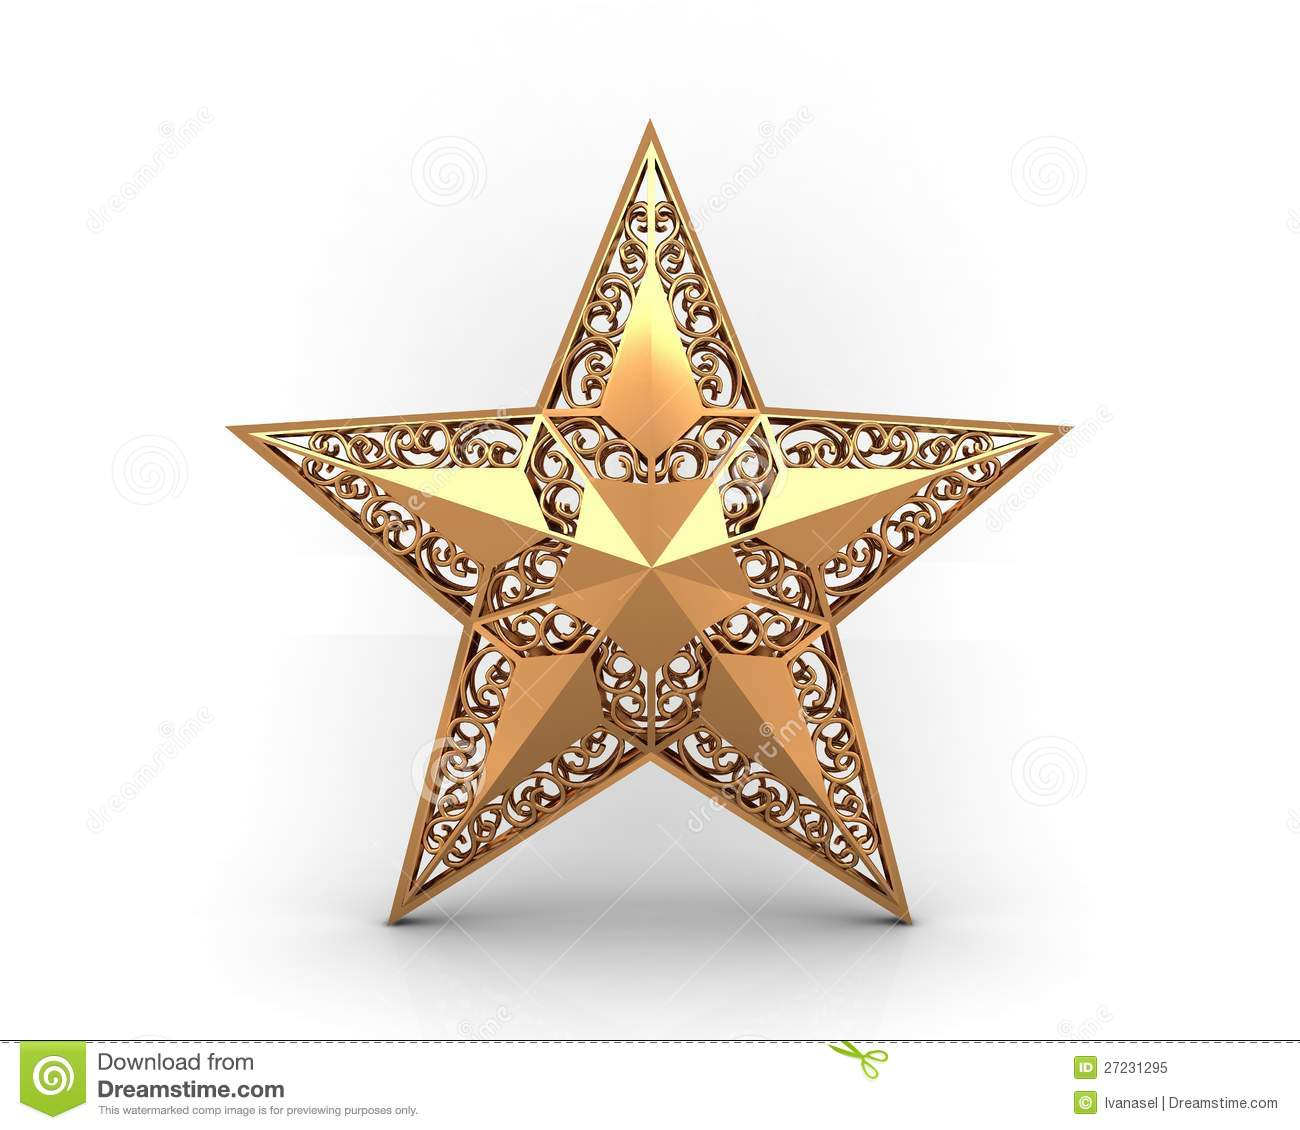 Gold star with ornaments royalty free stock photo image